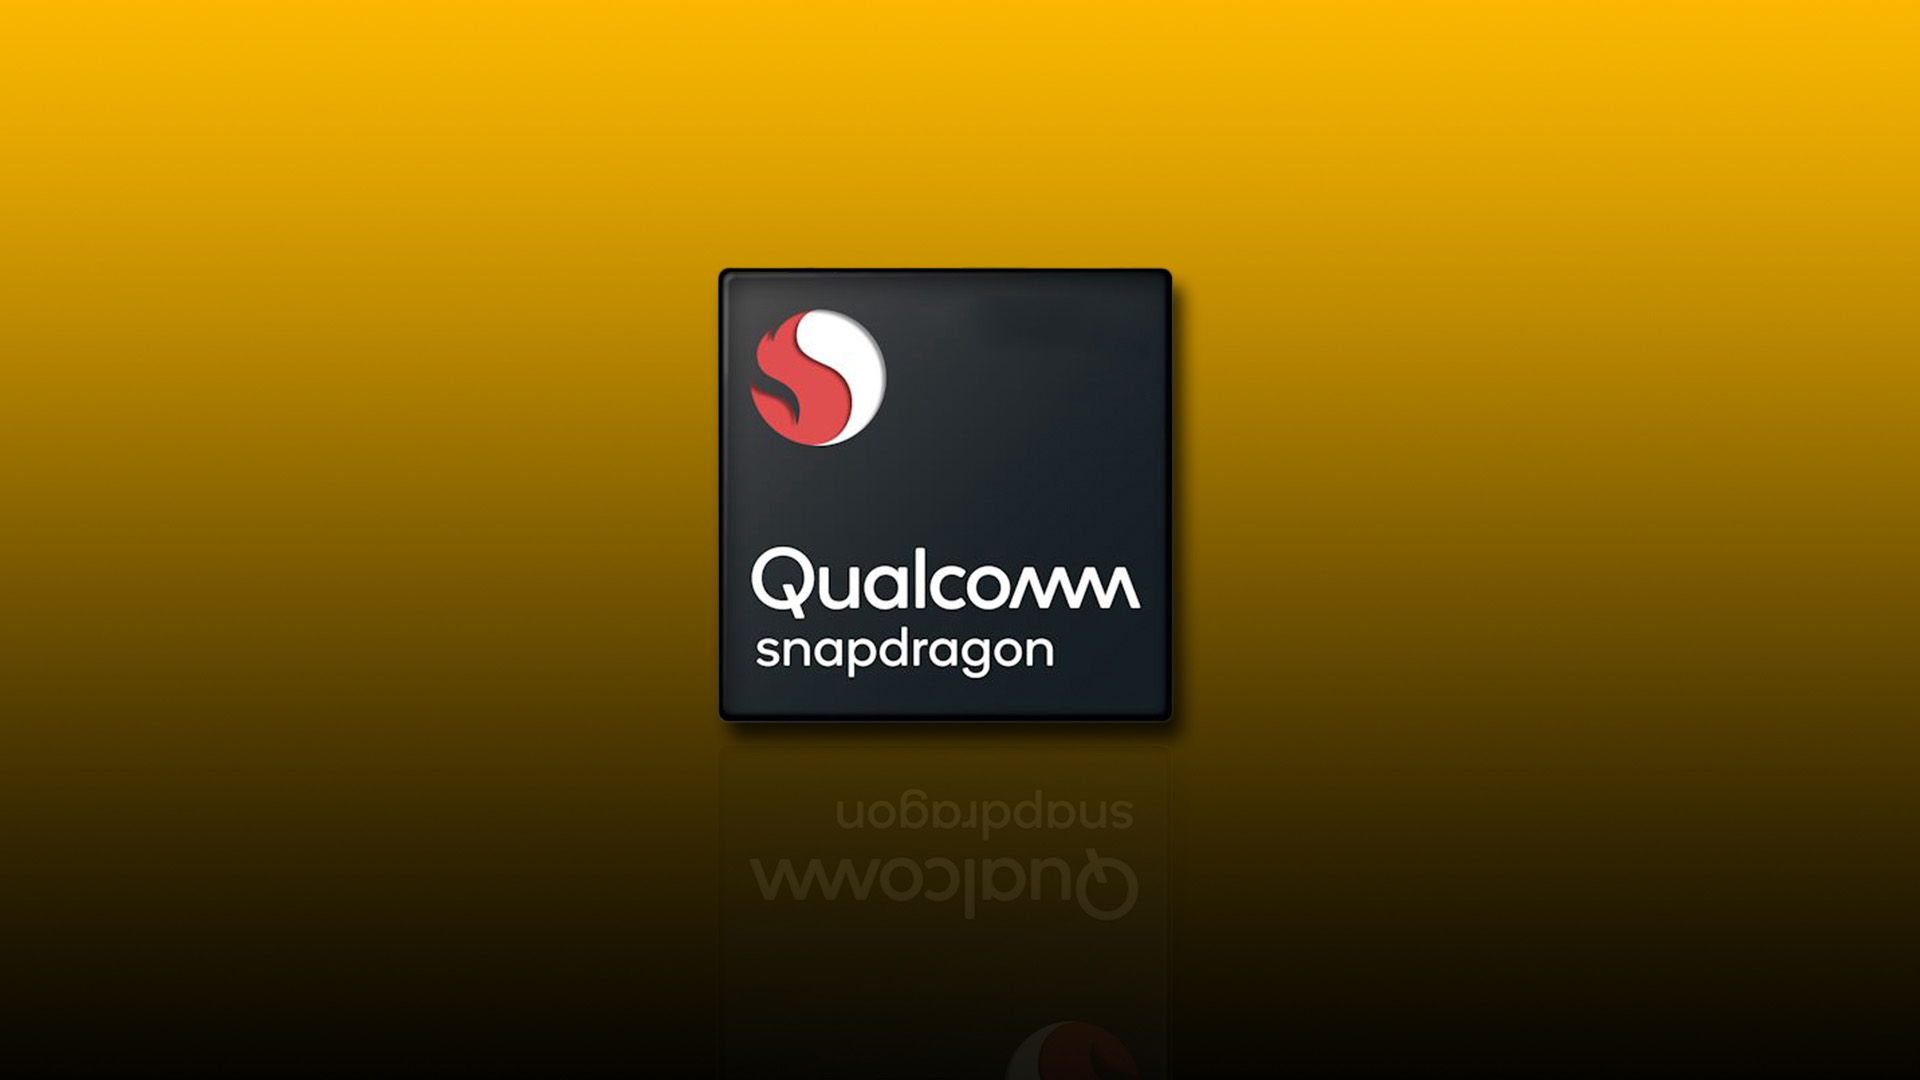 Каким будет новый флагманский процессор Qualcomm Snapdragon 875